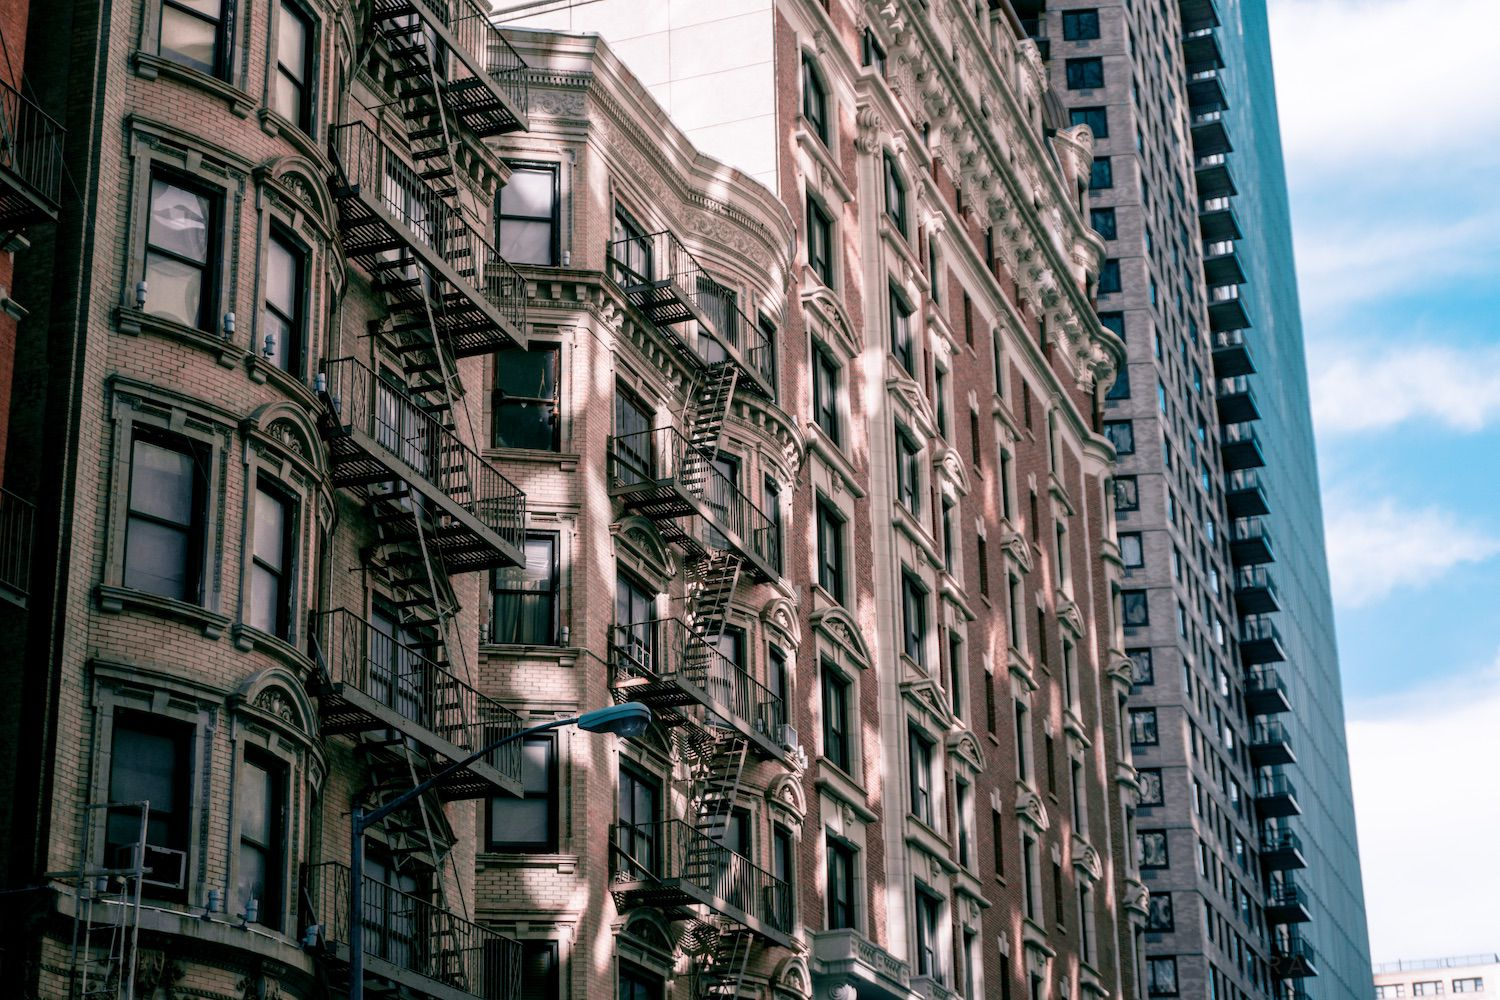 nyc-by-travis-zane